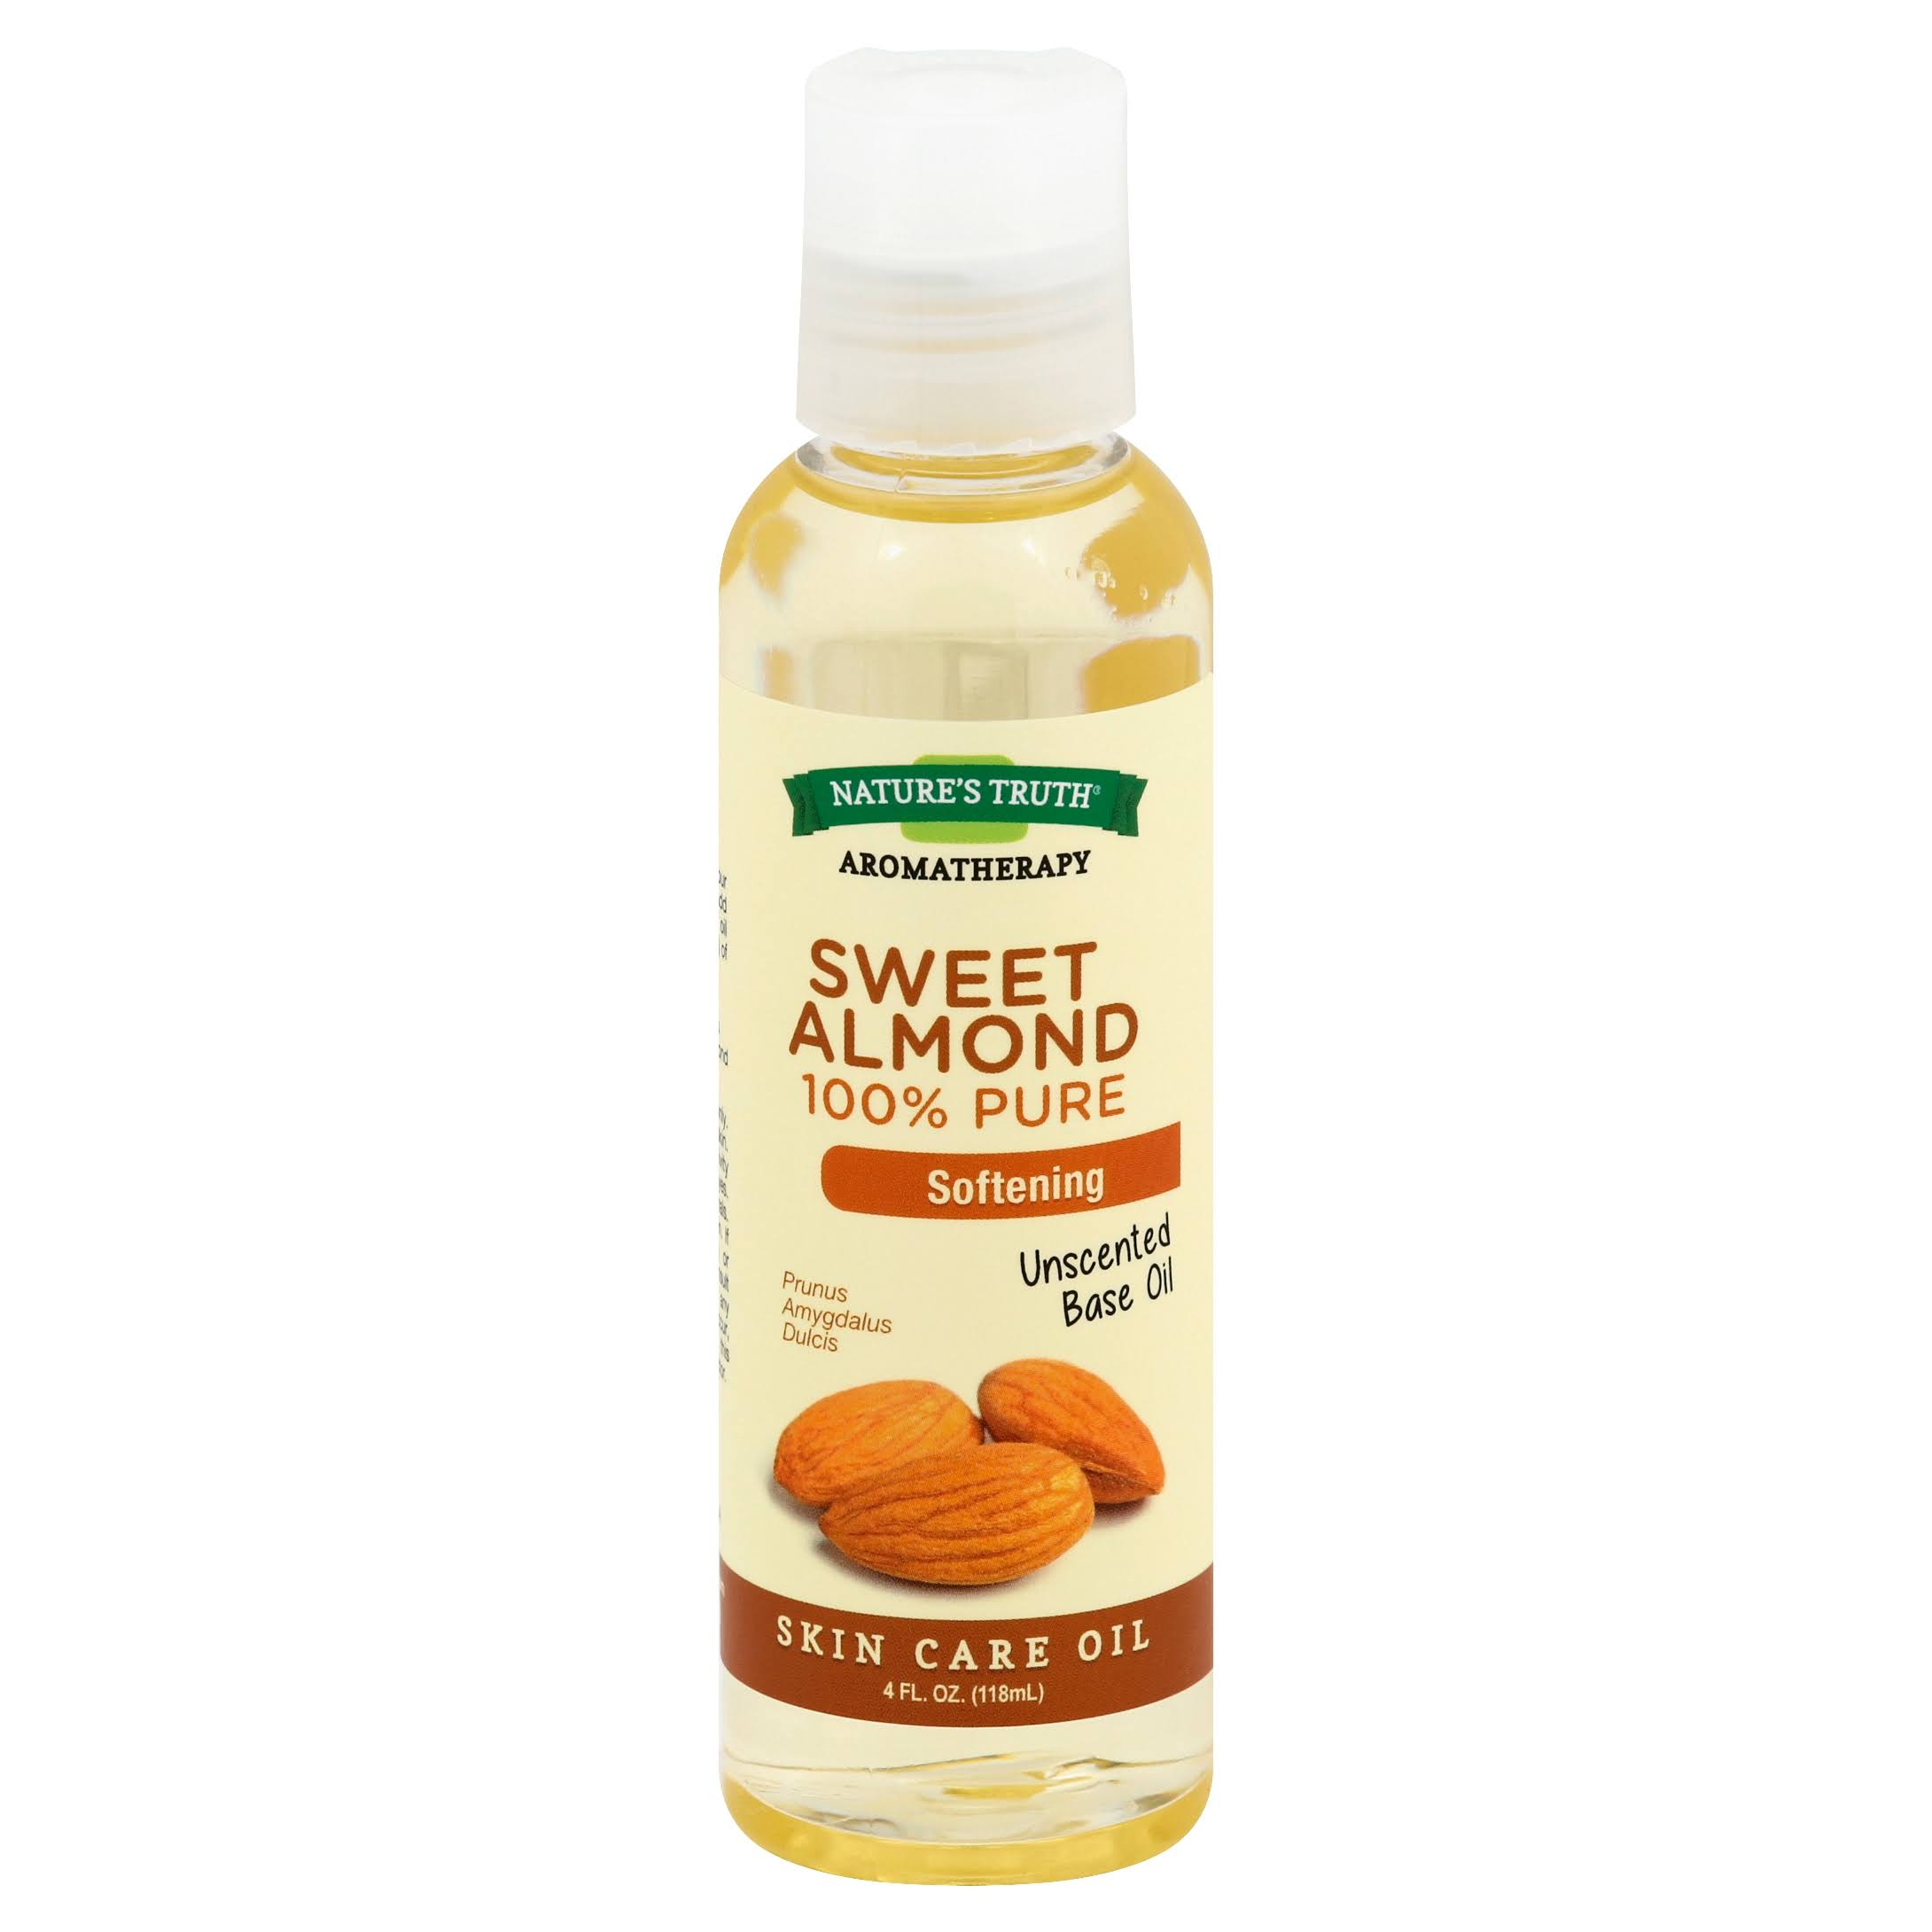 Nature's Truth Aromatherapy 100% Pure Skin Care Oil - Sweet Almond, 118ml